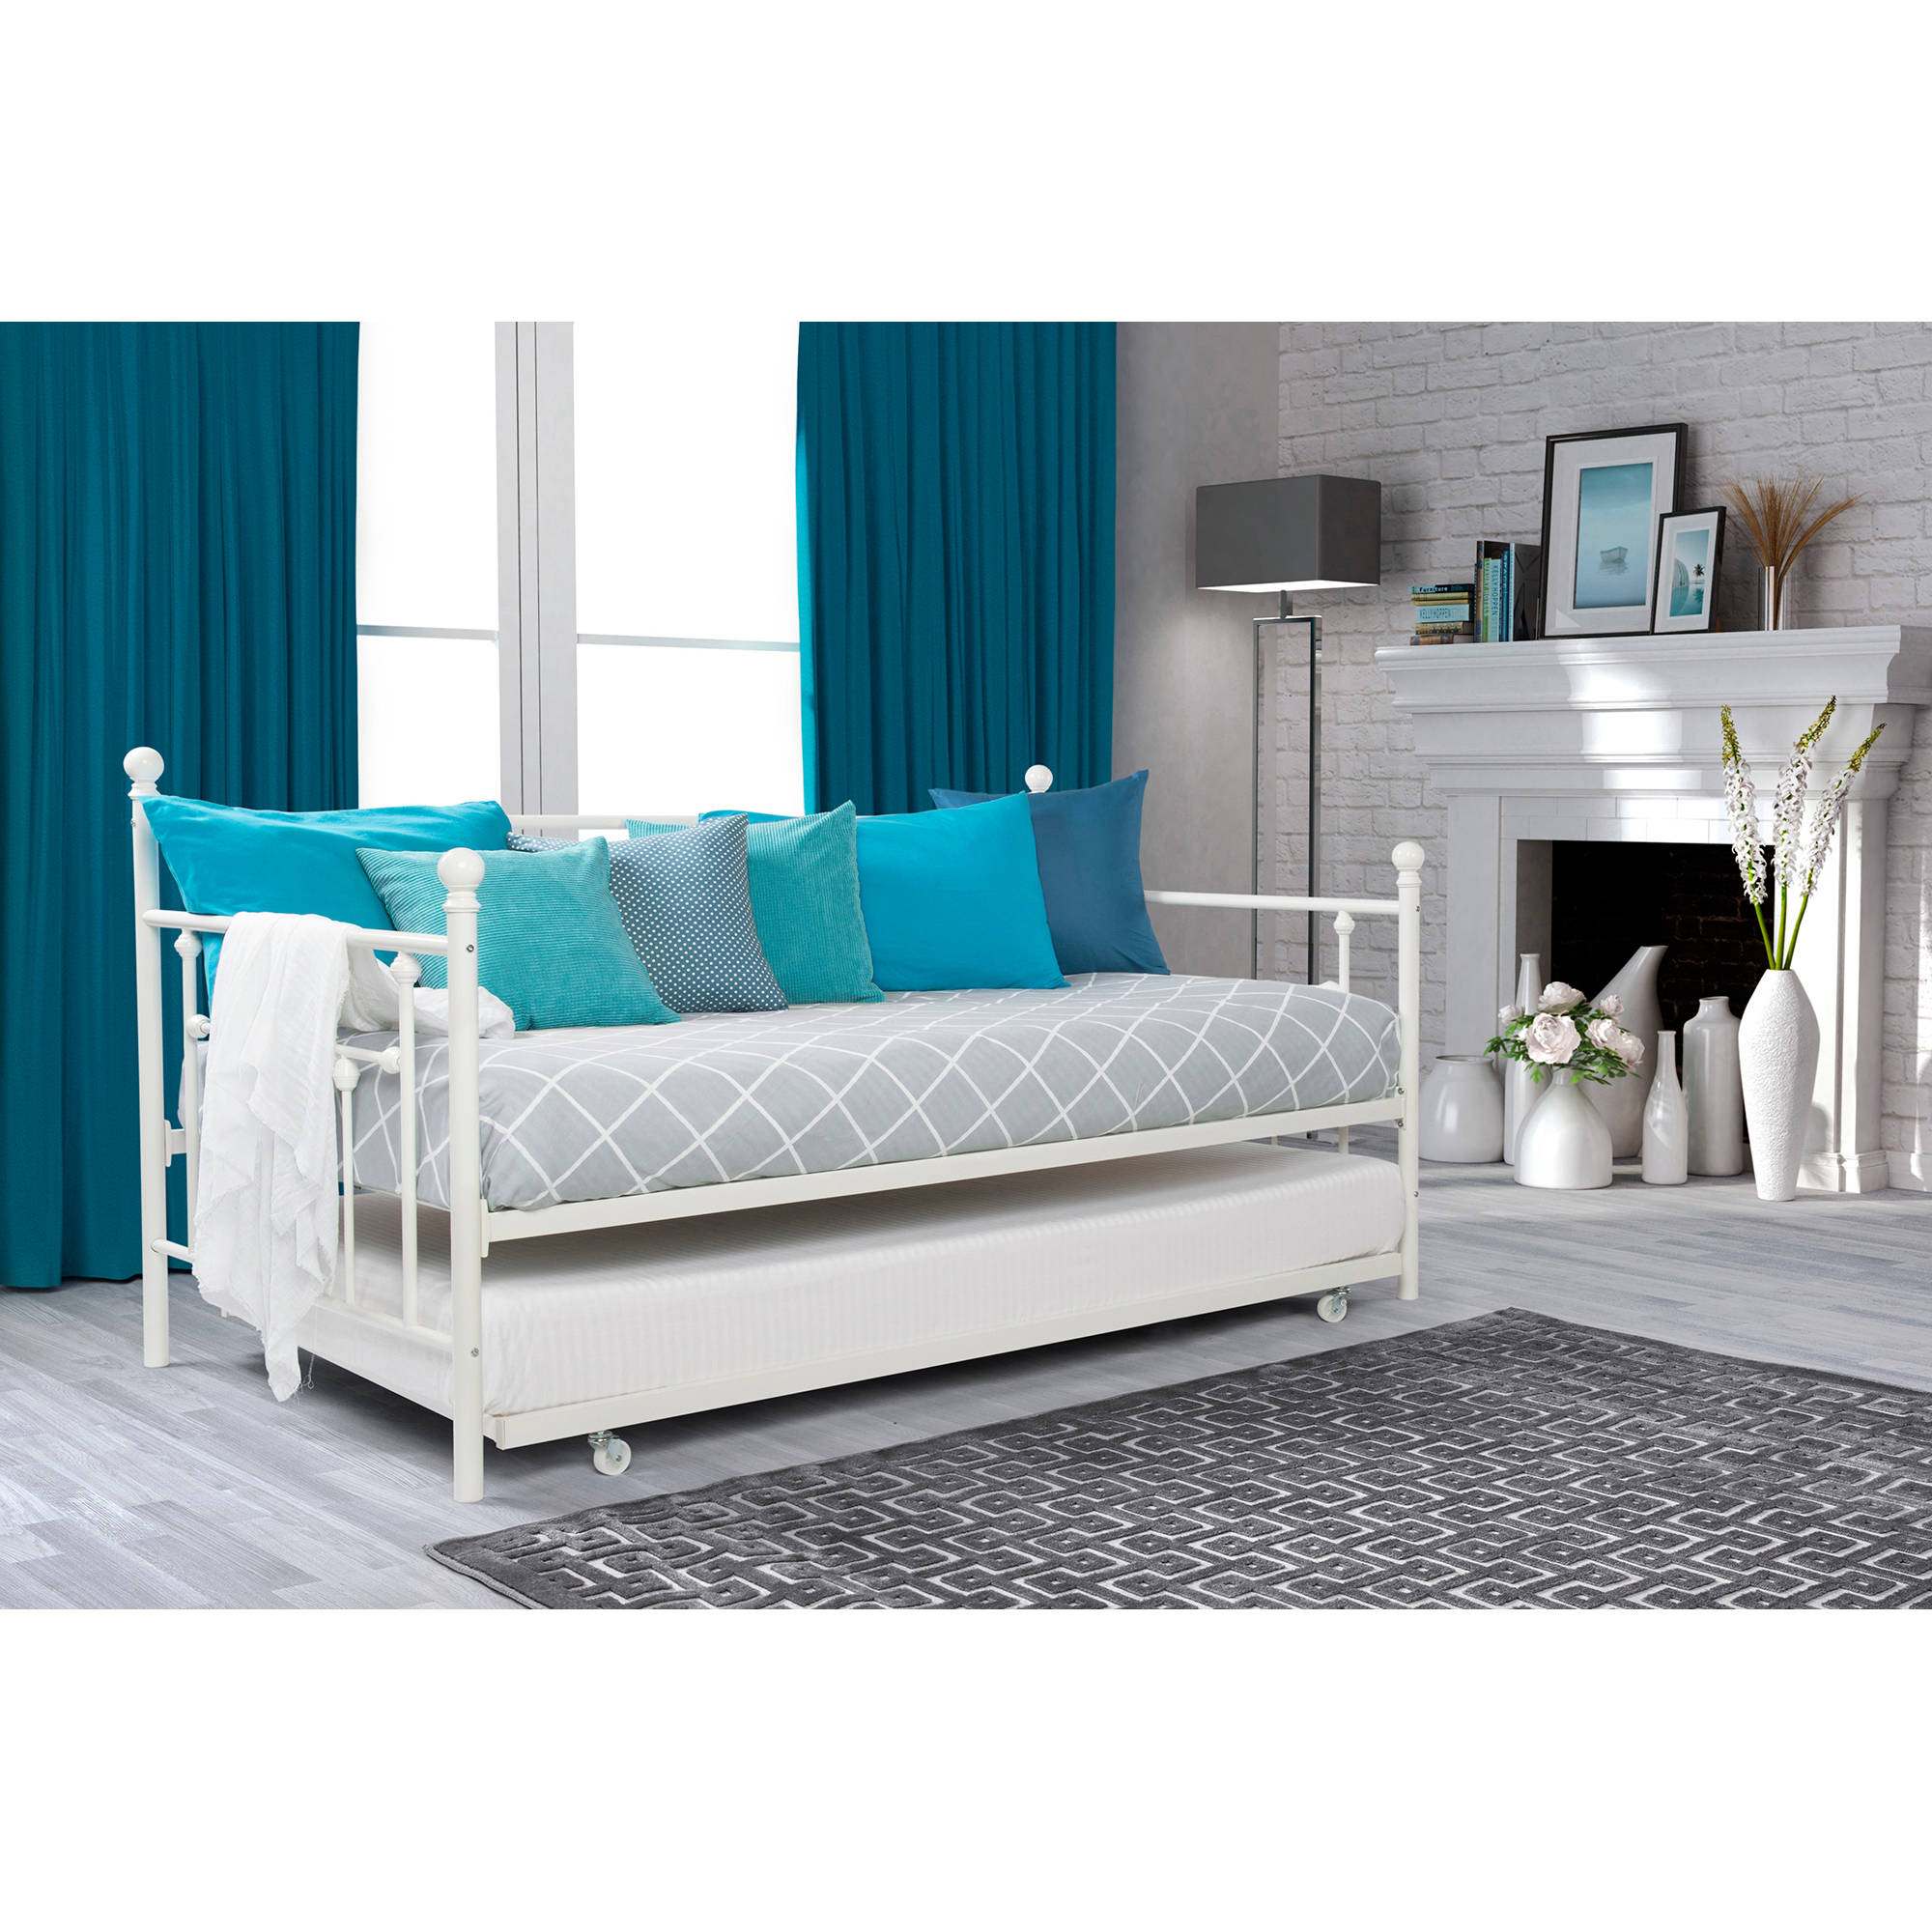 better homes and gardens kids panama beach twin bed with trundle white finish walmartcom